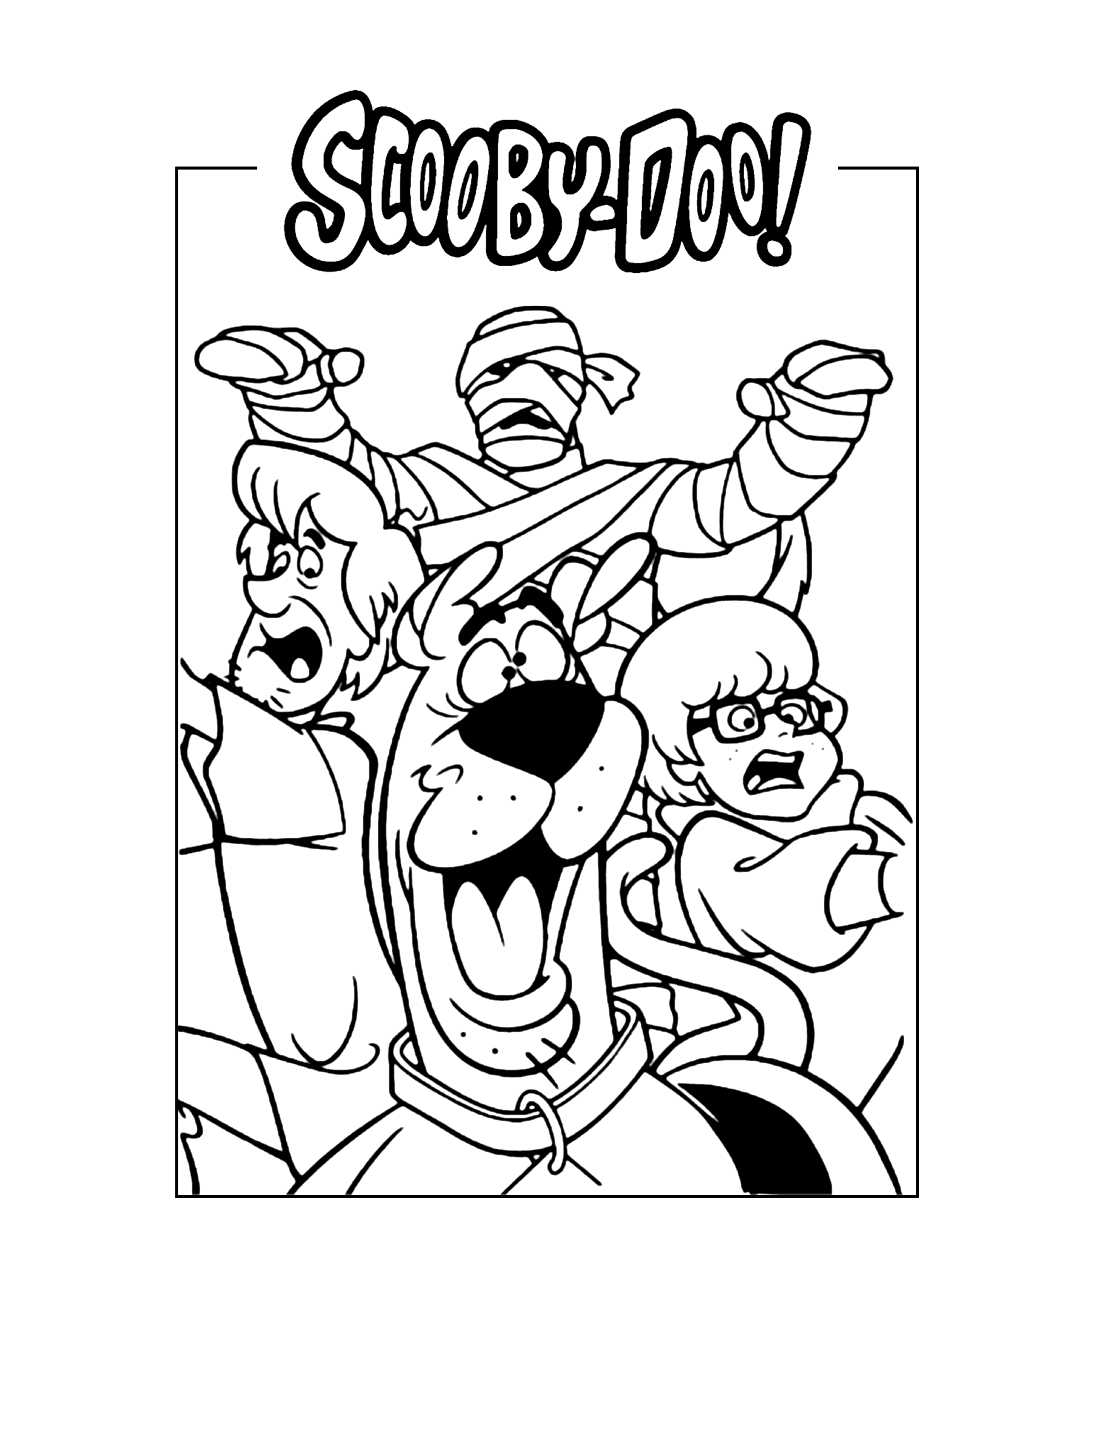 Scooby Doo Mummy Coloring Page